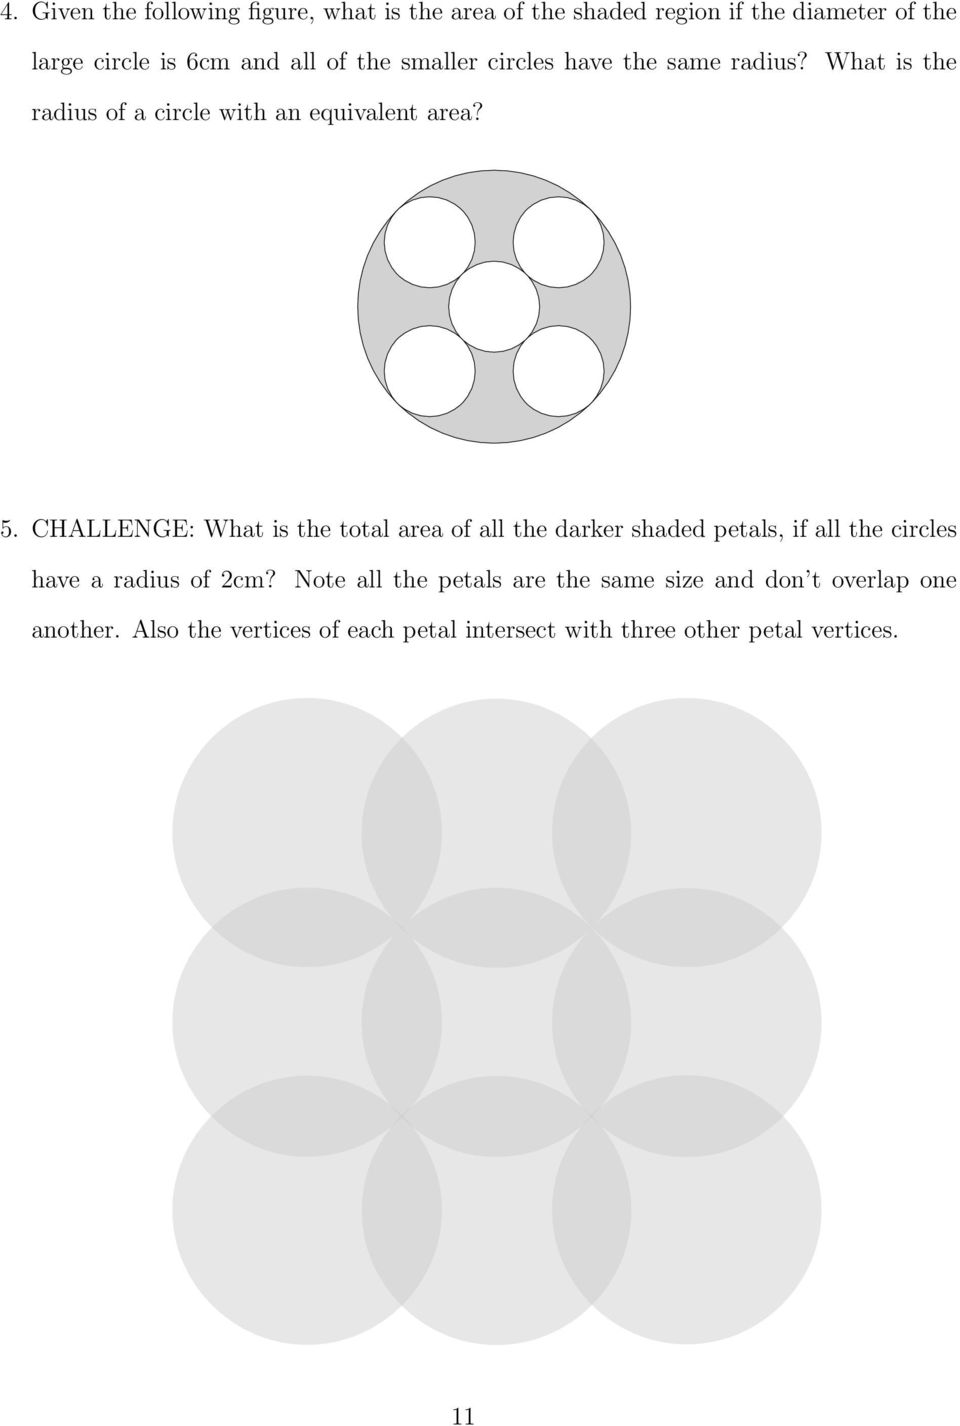 CHALLENGE: What is the total area of all the darker shaded petals, if all the circles have a radius of 2cm?